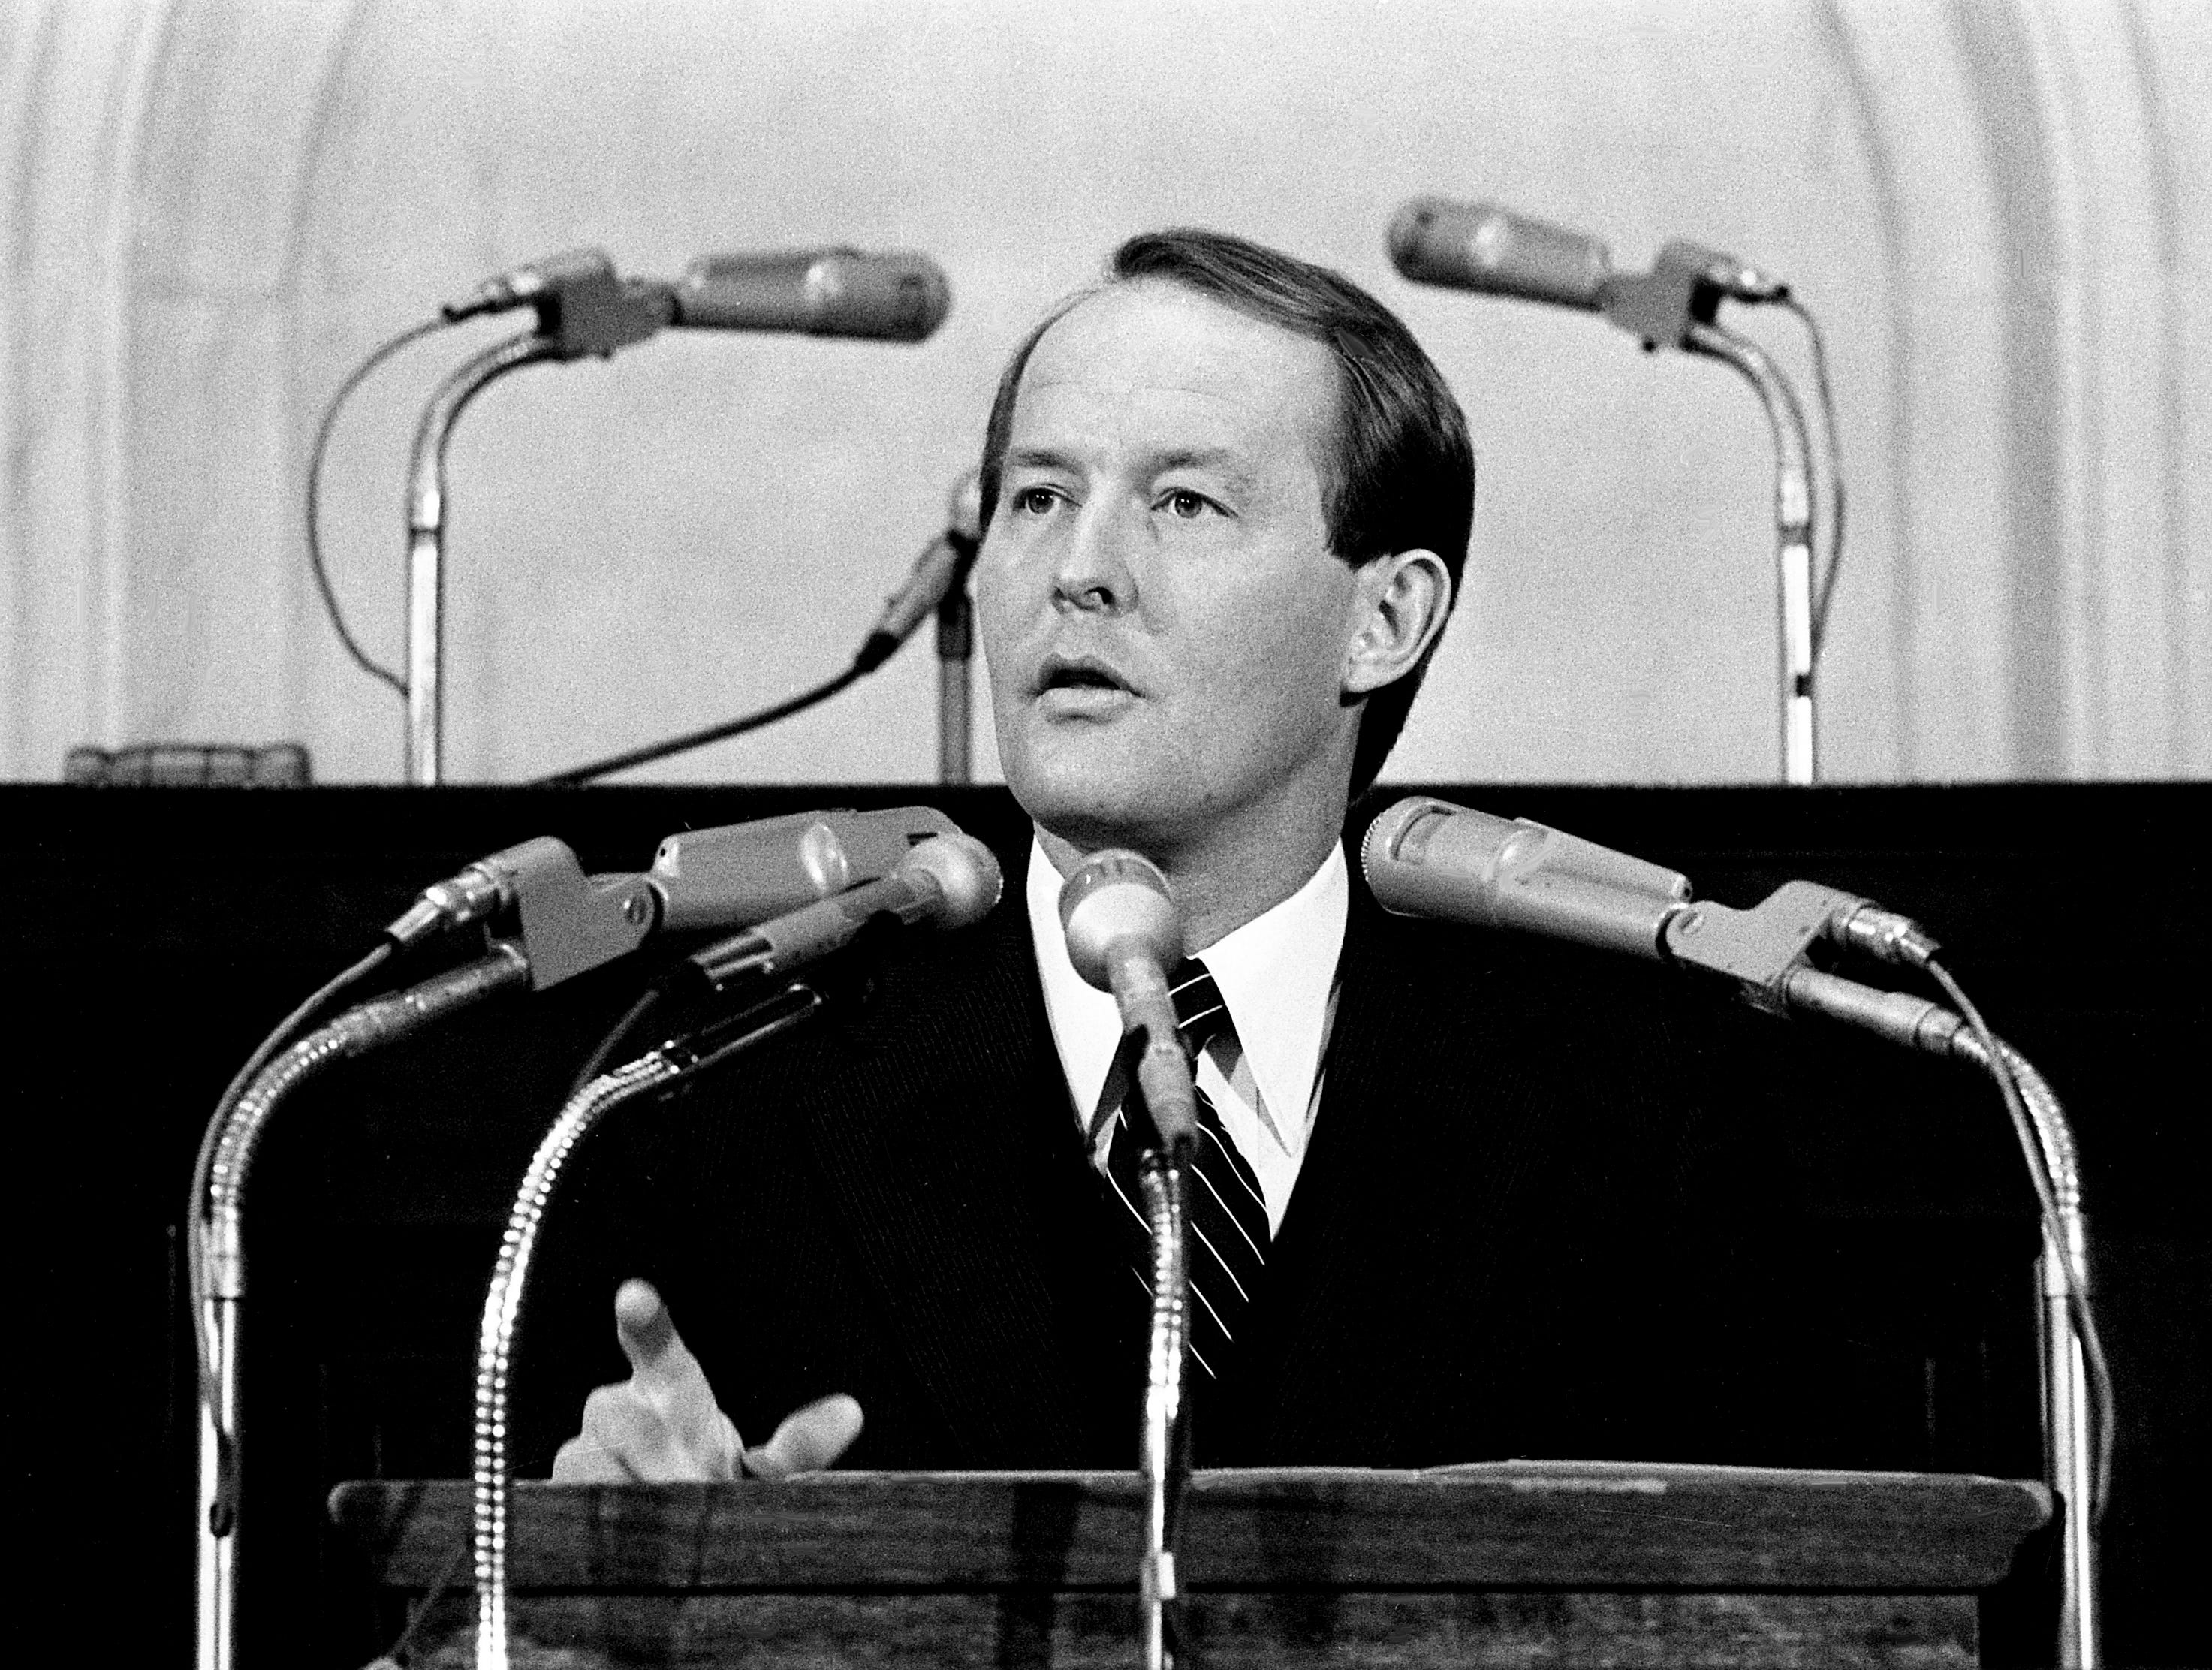 Gov. Lamar Alexander talks about his $3.5 billion budget, the largest in history, during his address to the joint legislature at the state Capitol on Feb. 28, 1979. He proposed prison improvements and teacher and state employee pay raises.